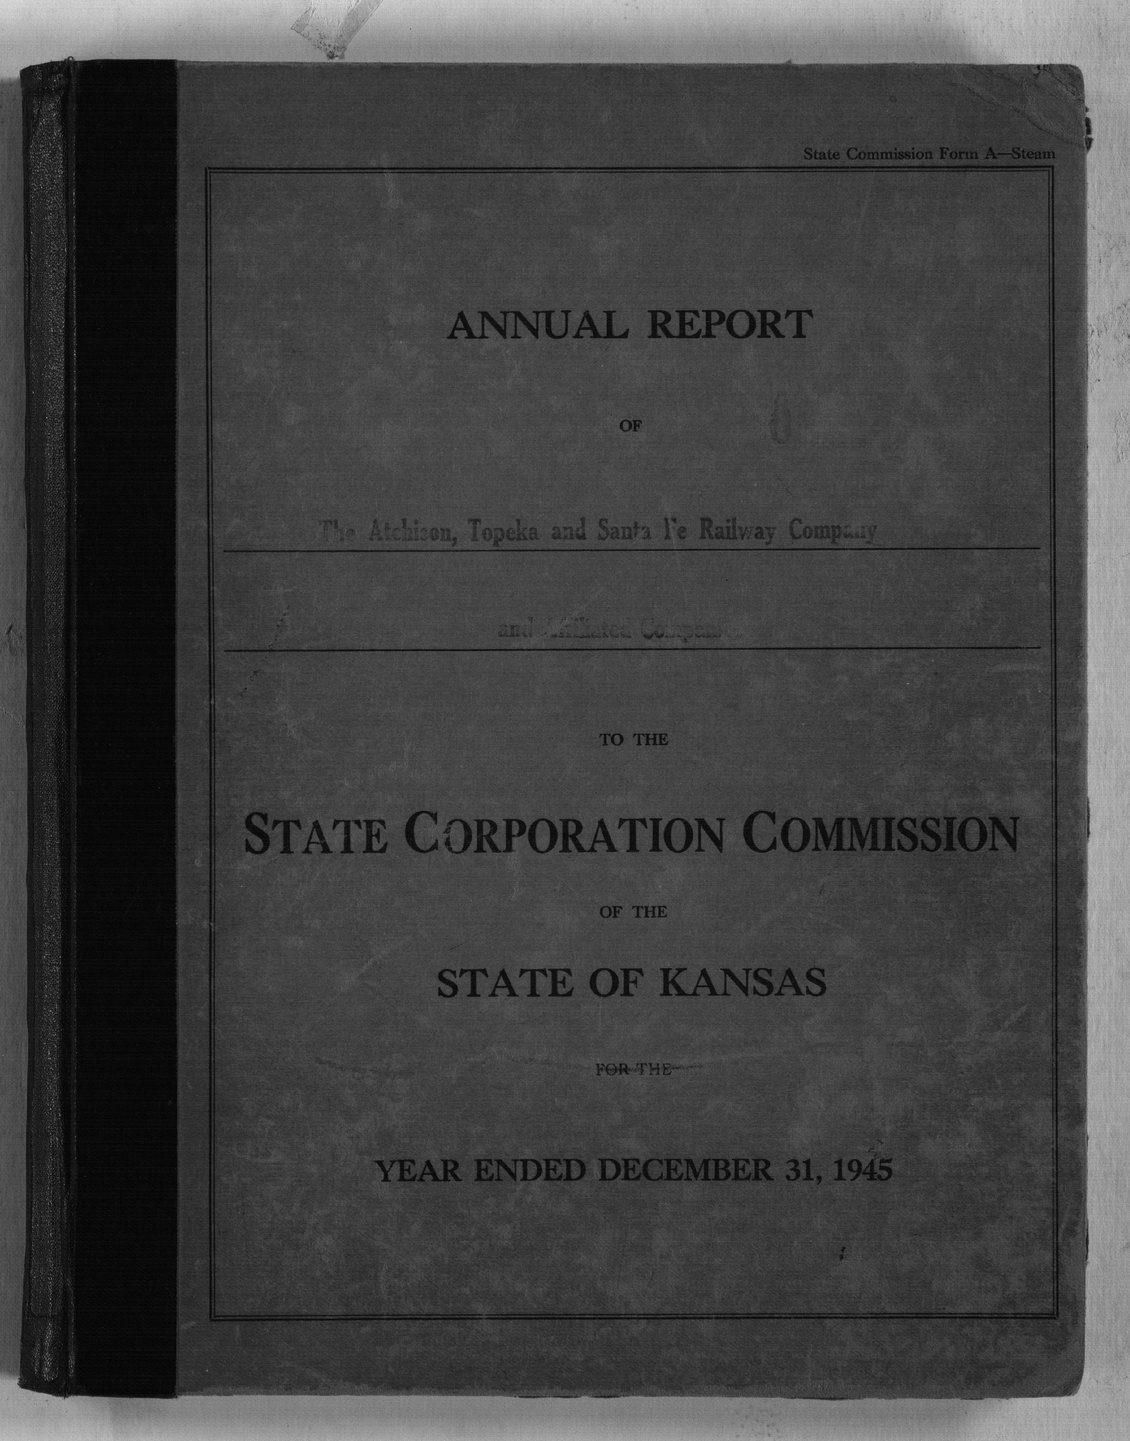 Annual reports of the Atchison, Topeka & Santa Fe Railway Company to the State Corporation Commission - Front Cover